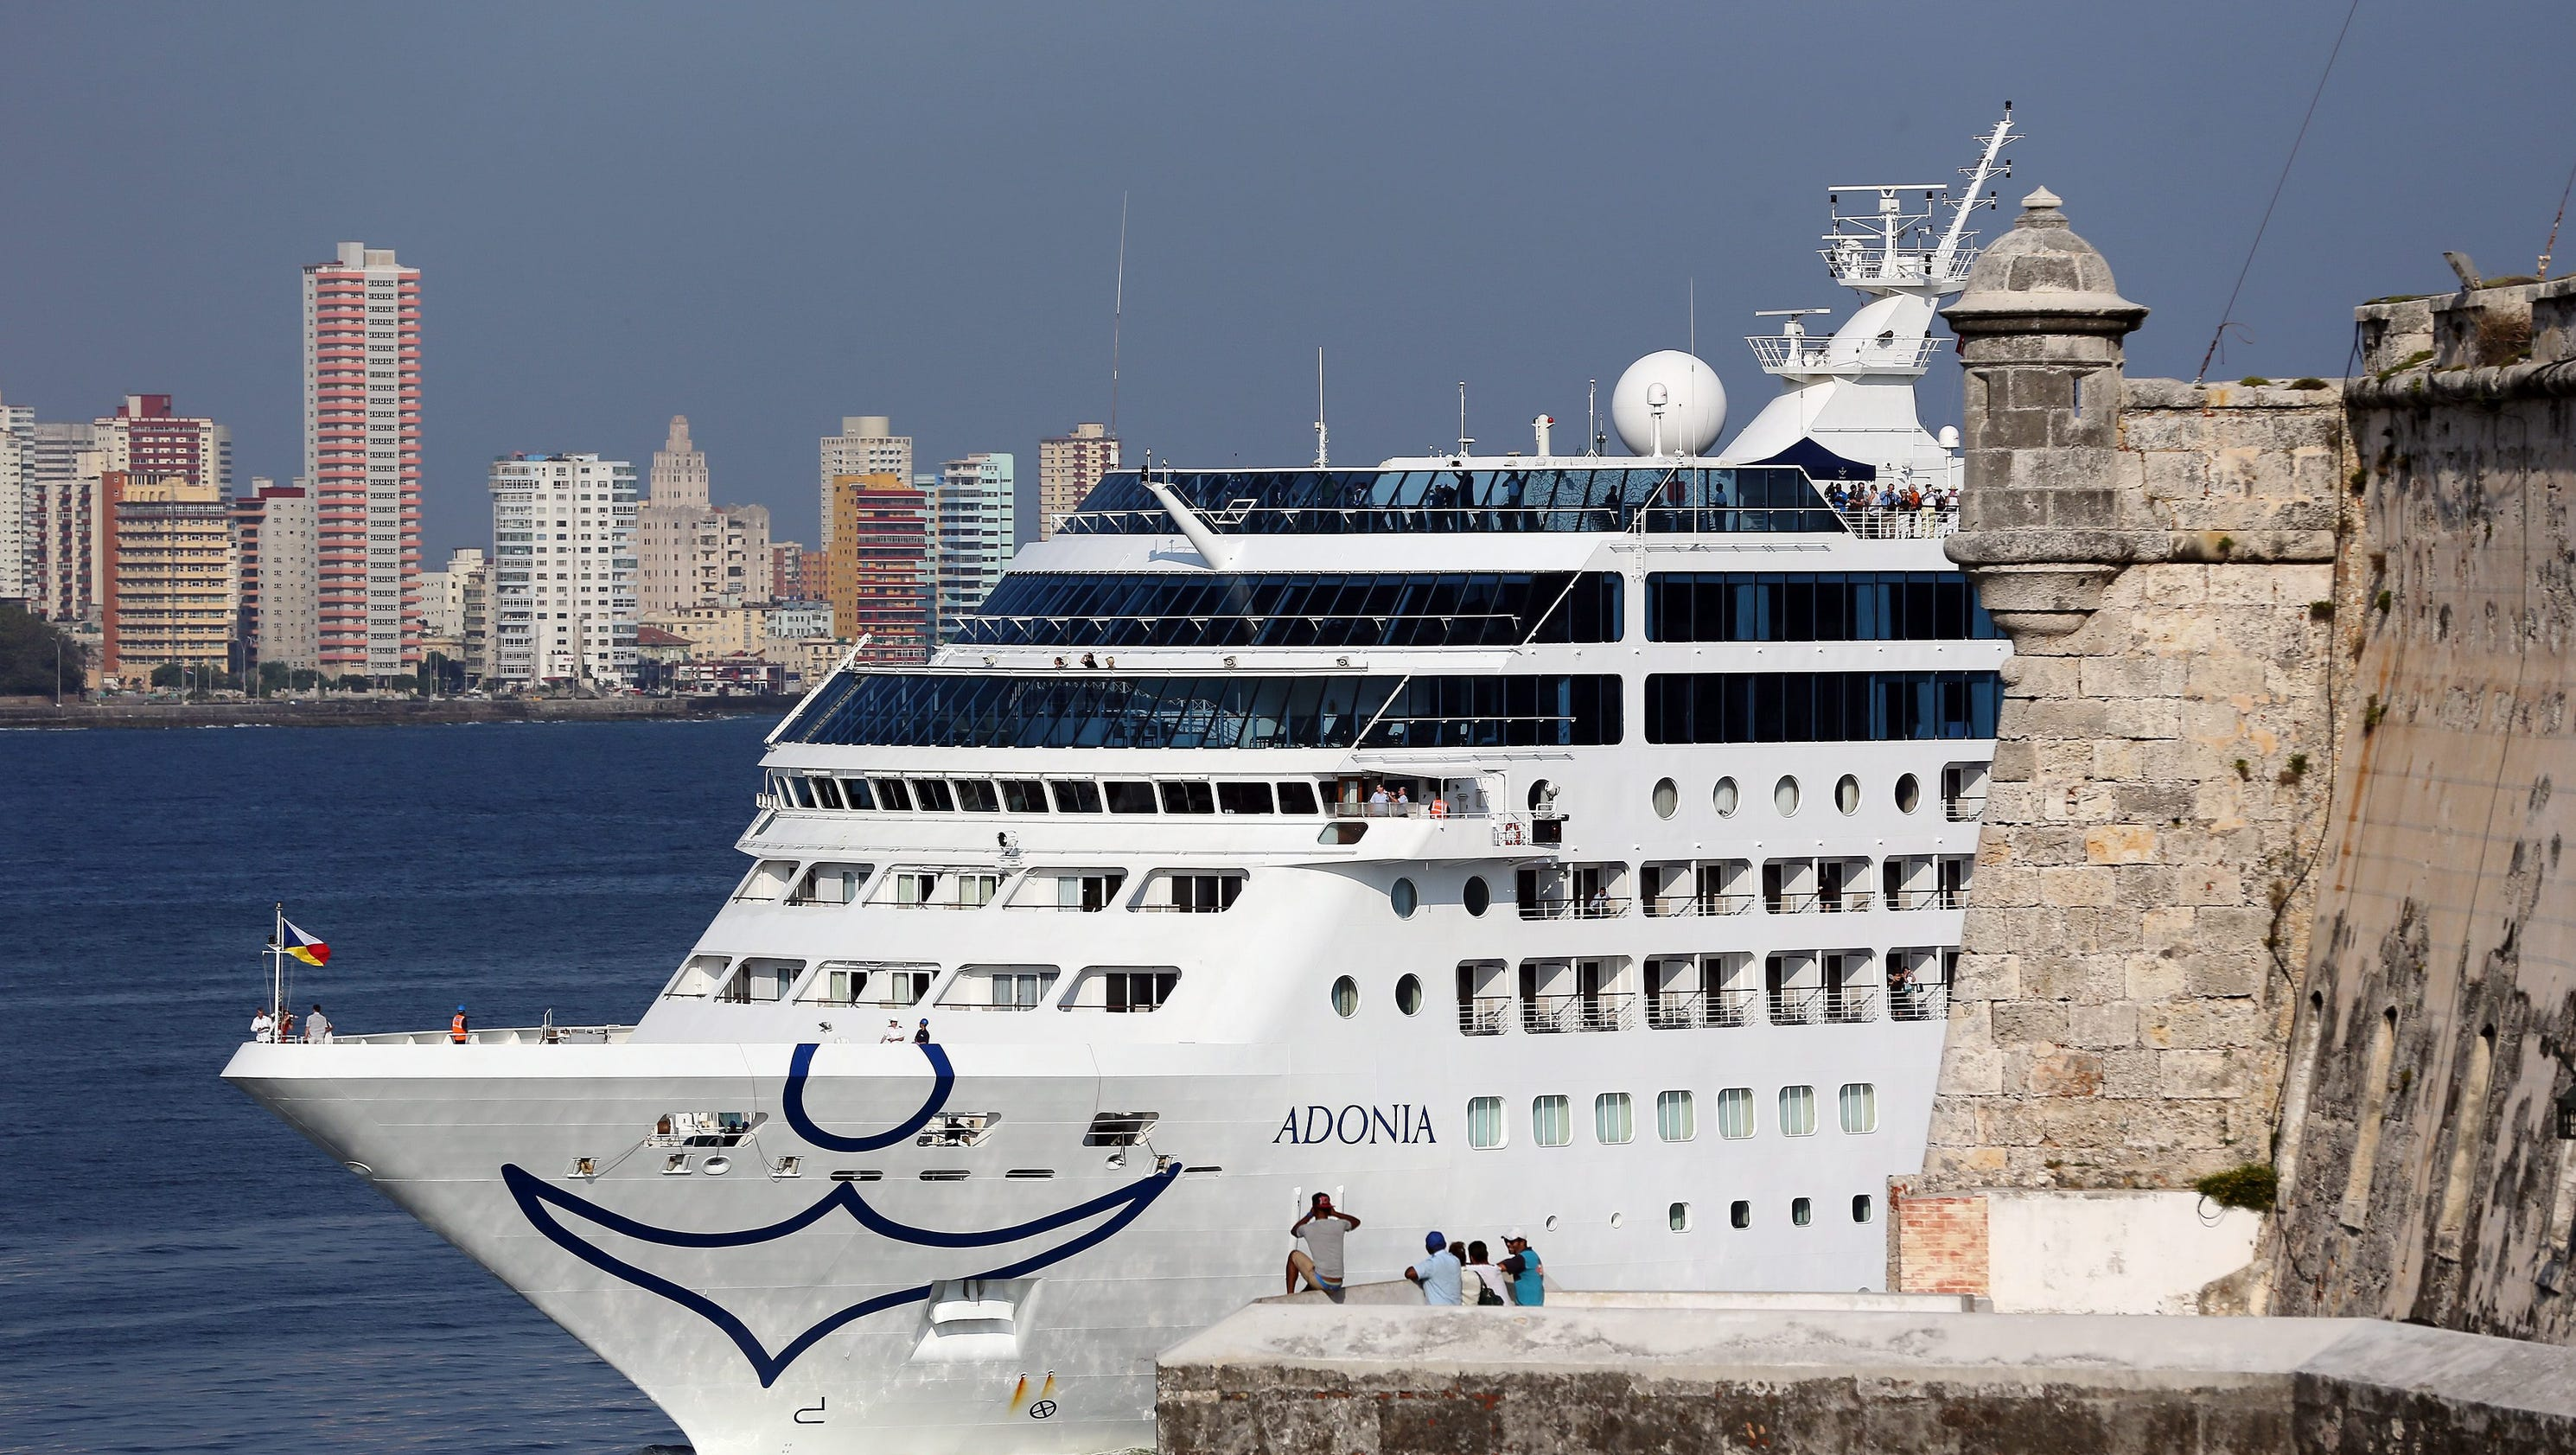 First U.S. cruise in decades arrives in Cuba